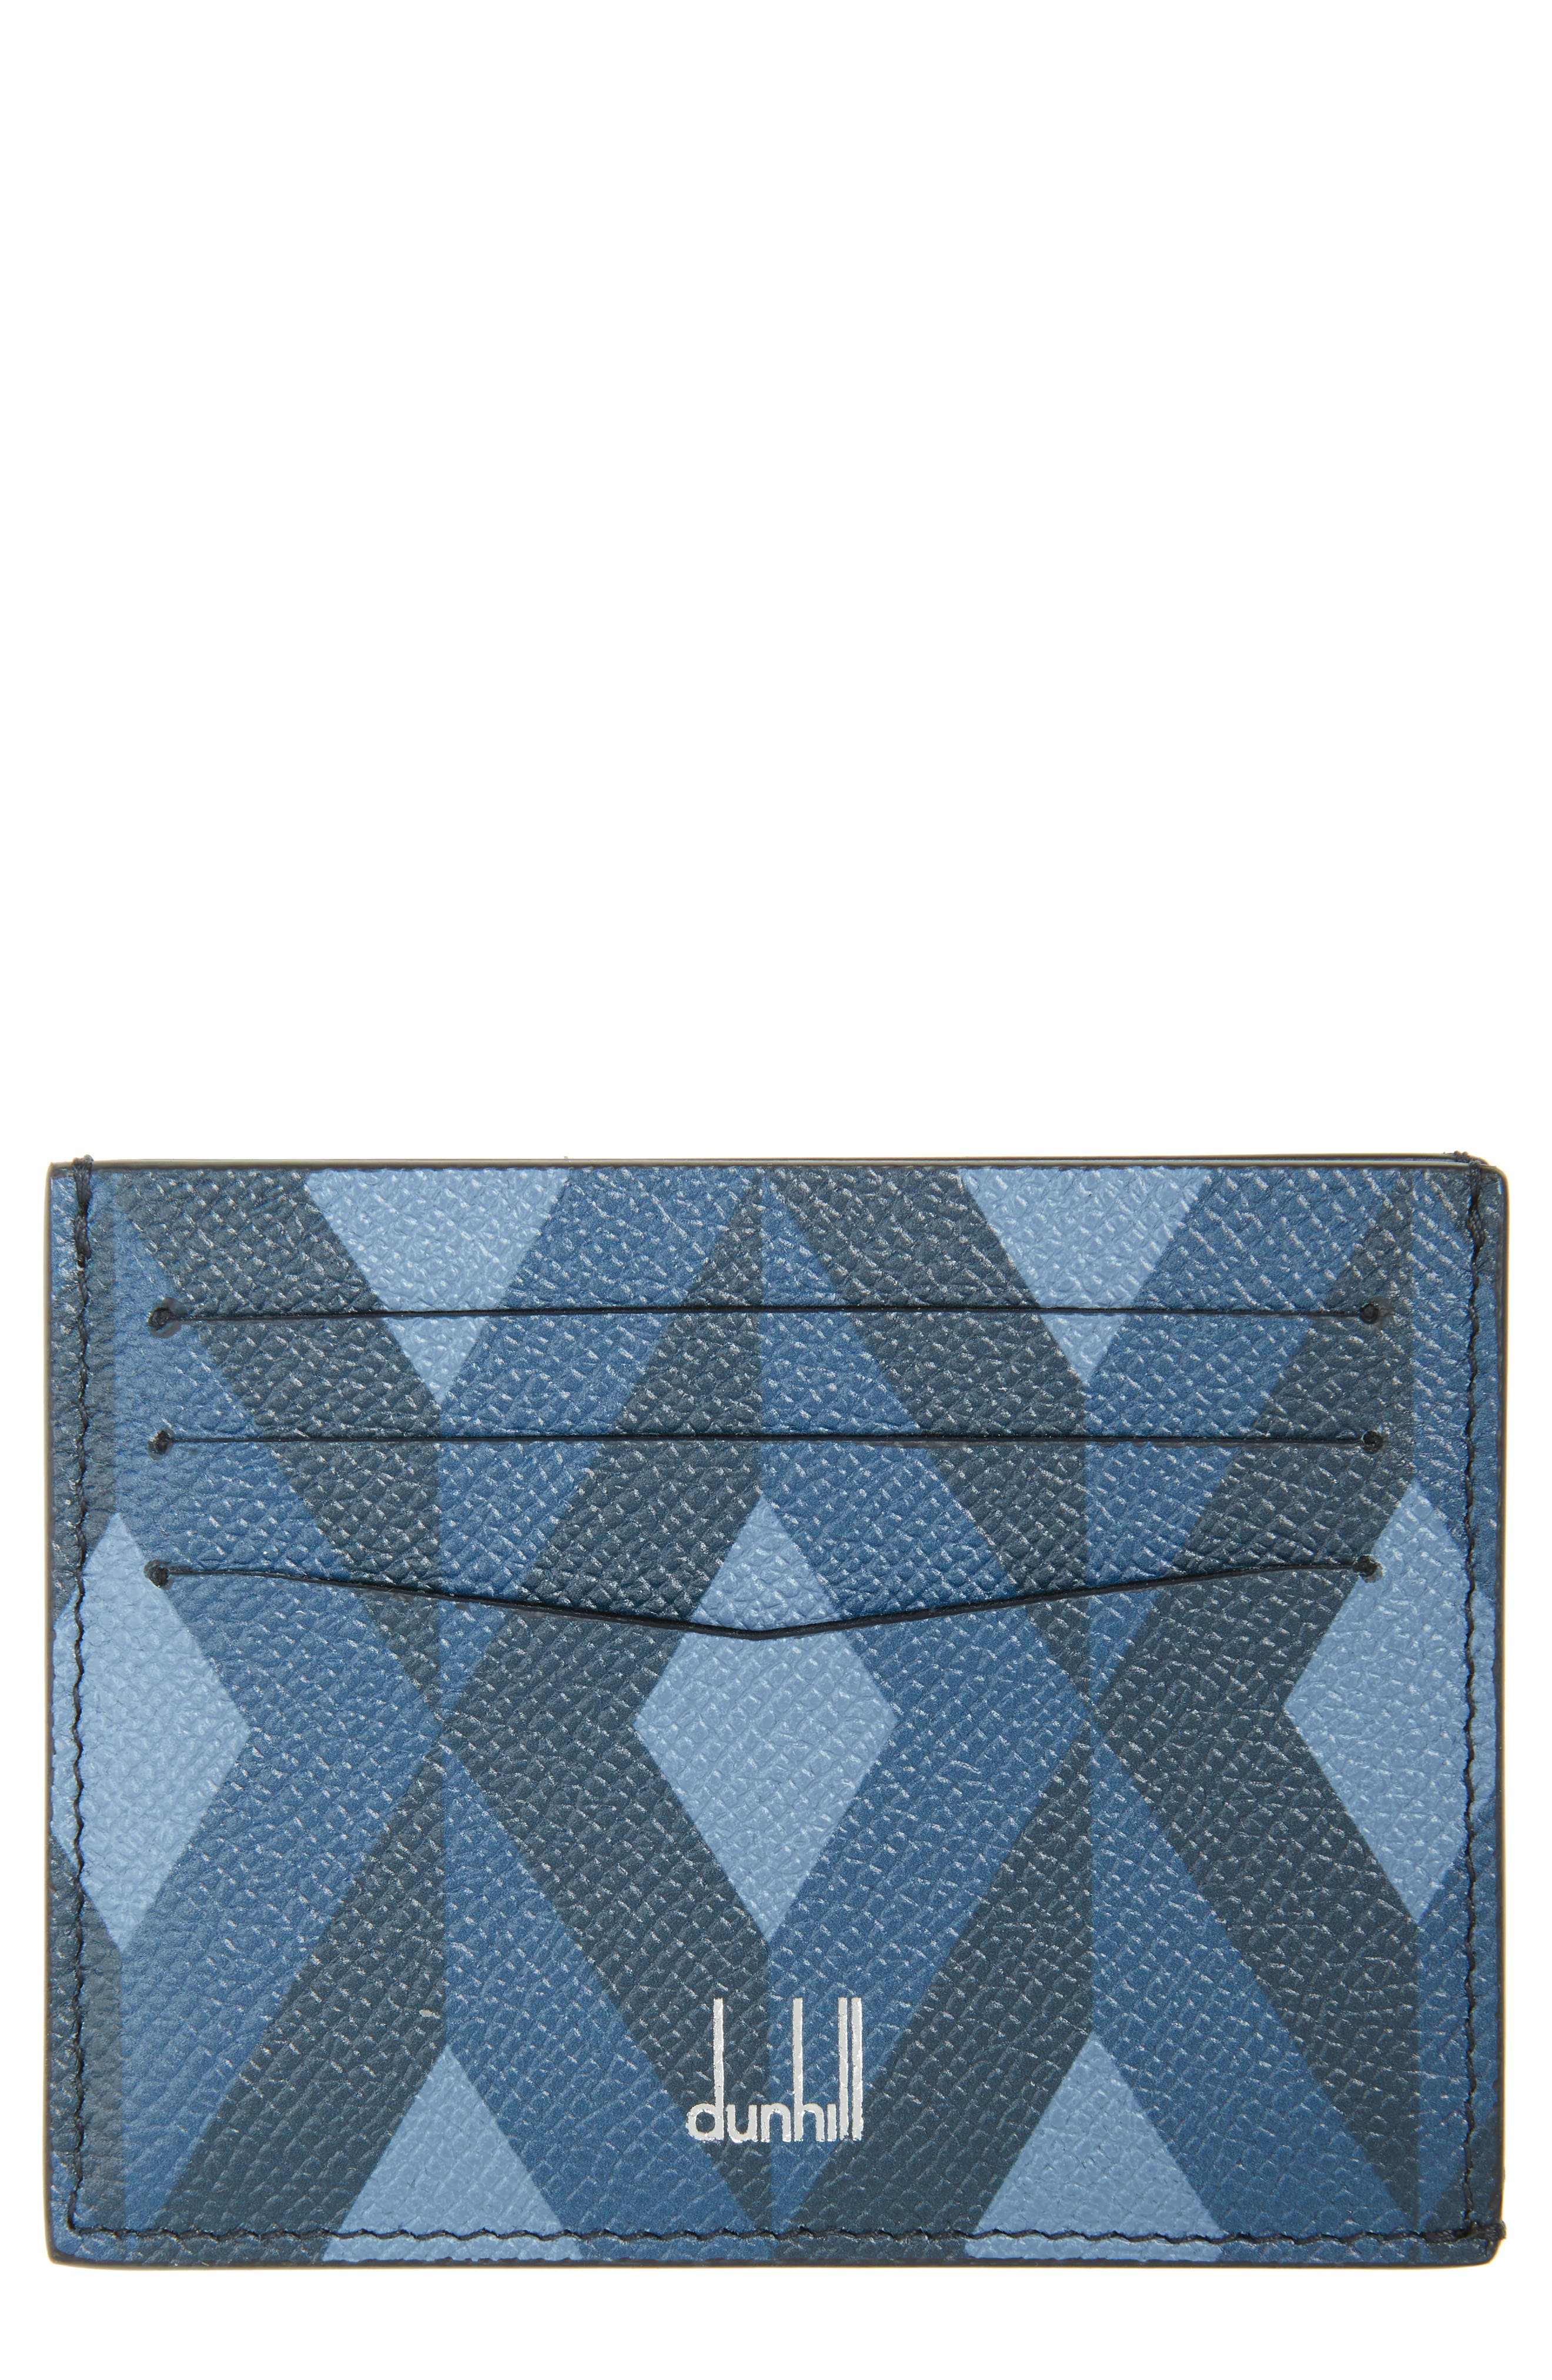 Dunnhill Cadogan Leather Card Case,                         Main,                         color, BLUE